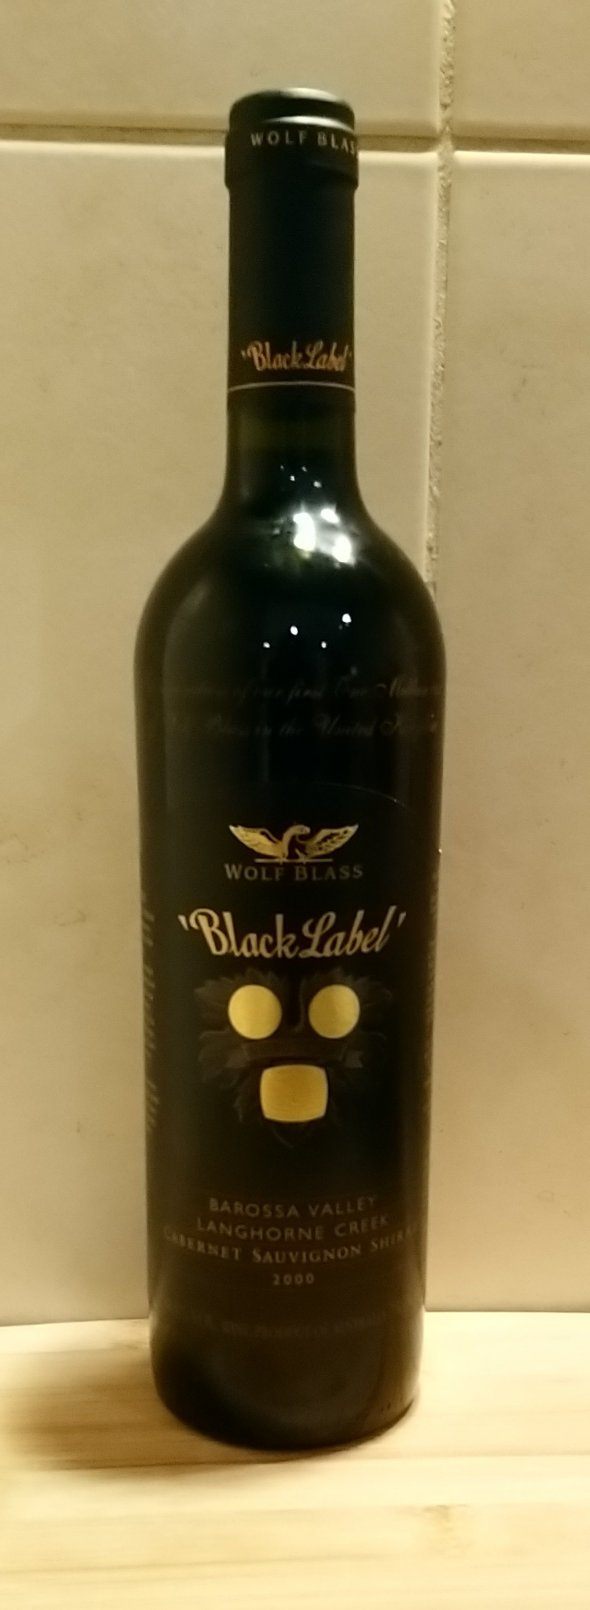 Wolf Blass, Black Label, South Australia celebration of first one million cases